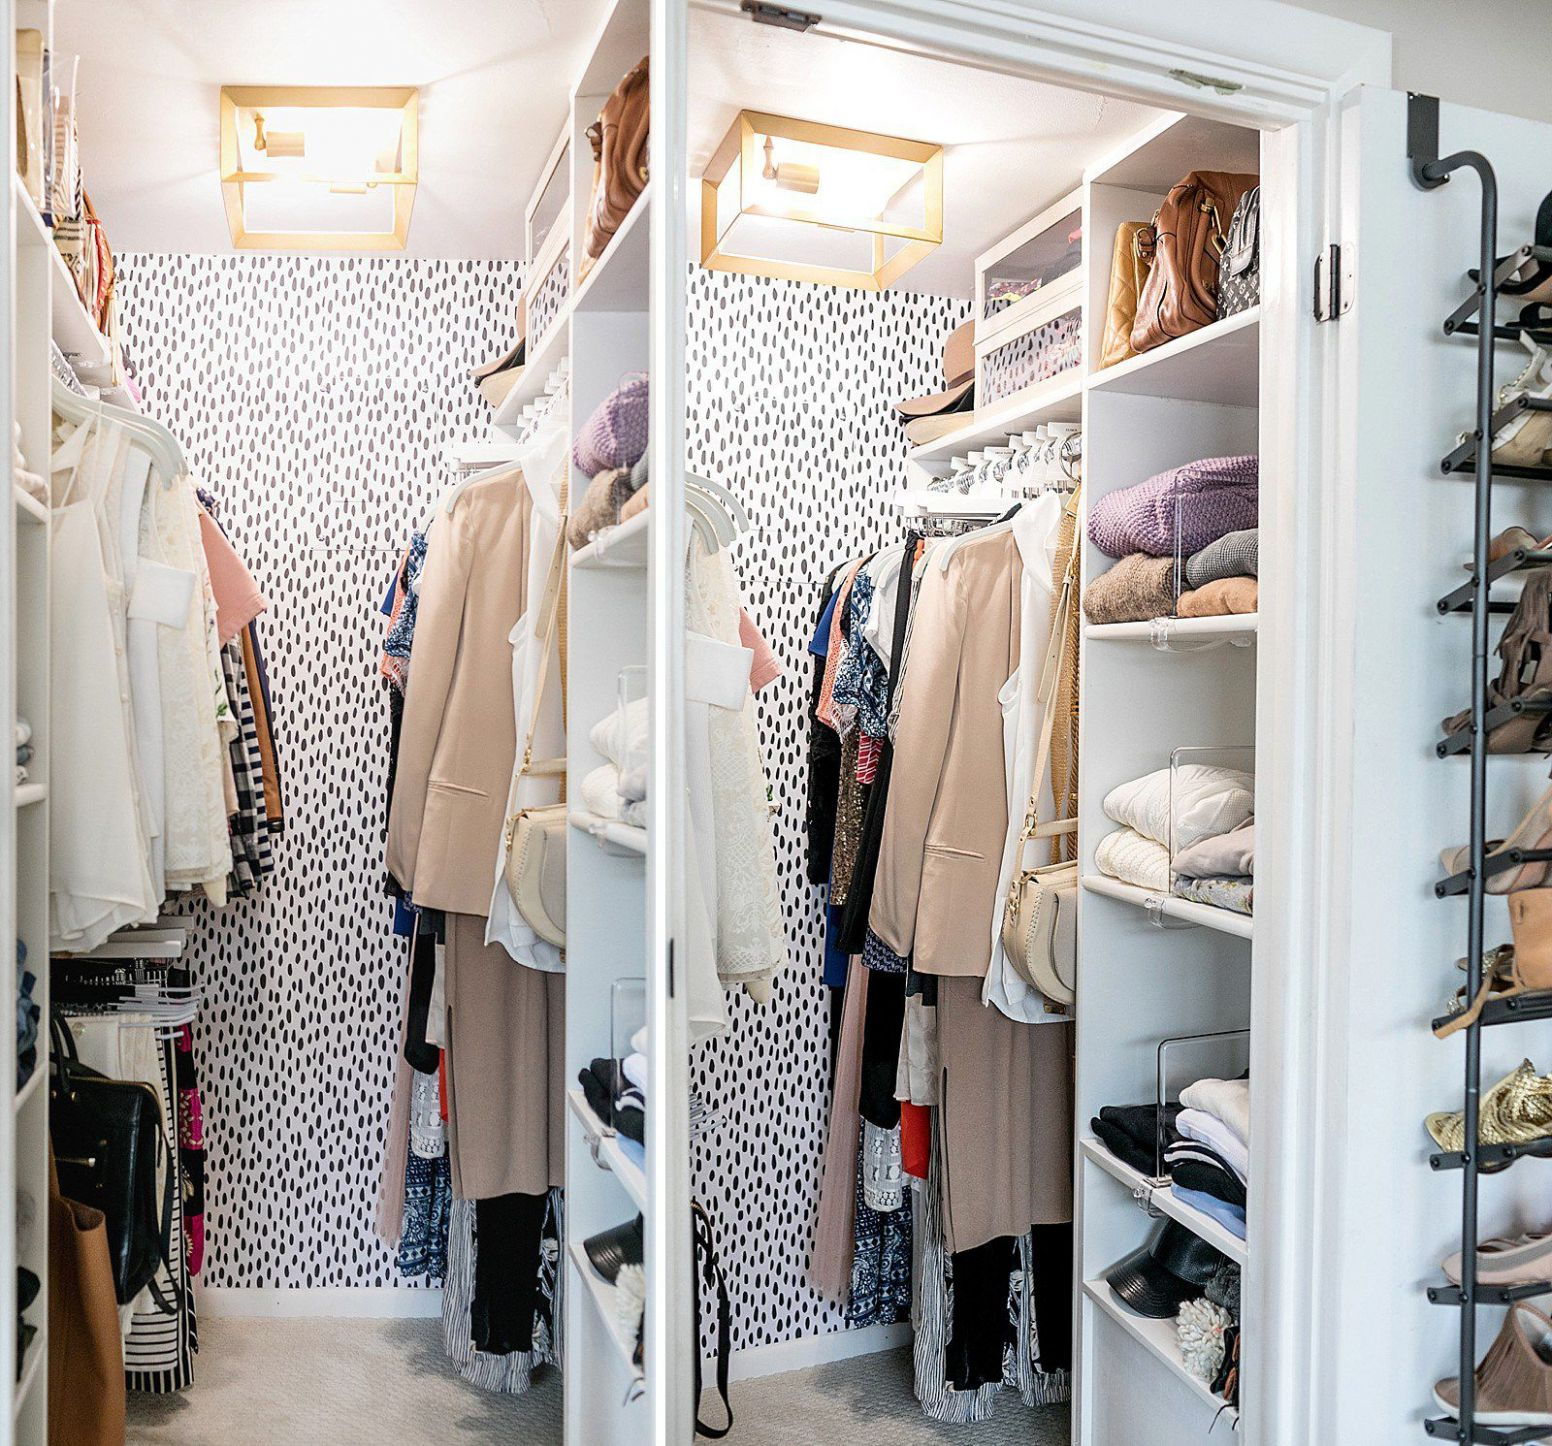 12 Best Small Walk-in Closet Storage Ideas for Bedrooms - closet arrangement ideas